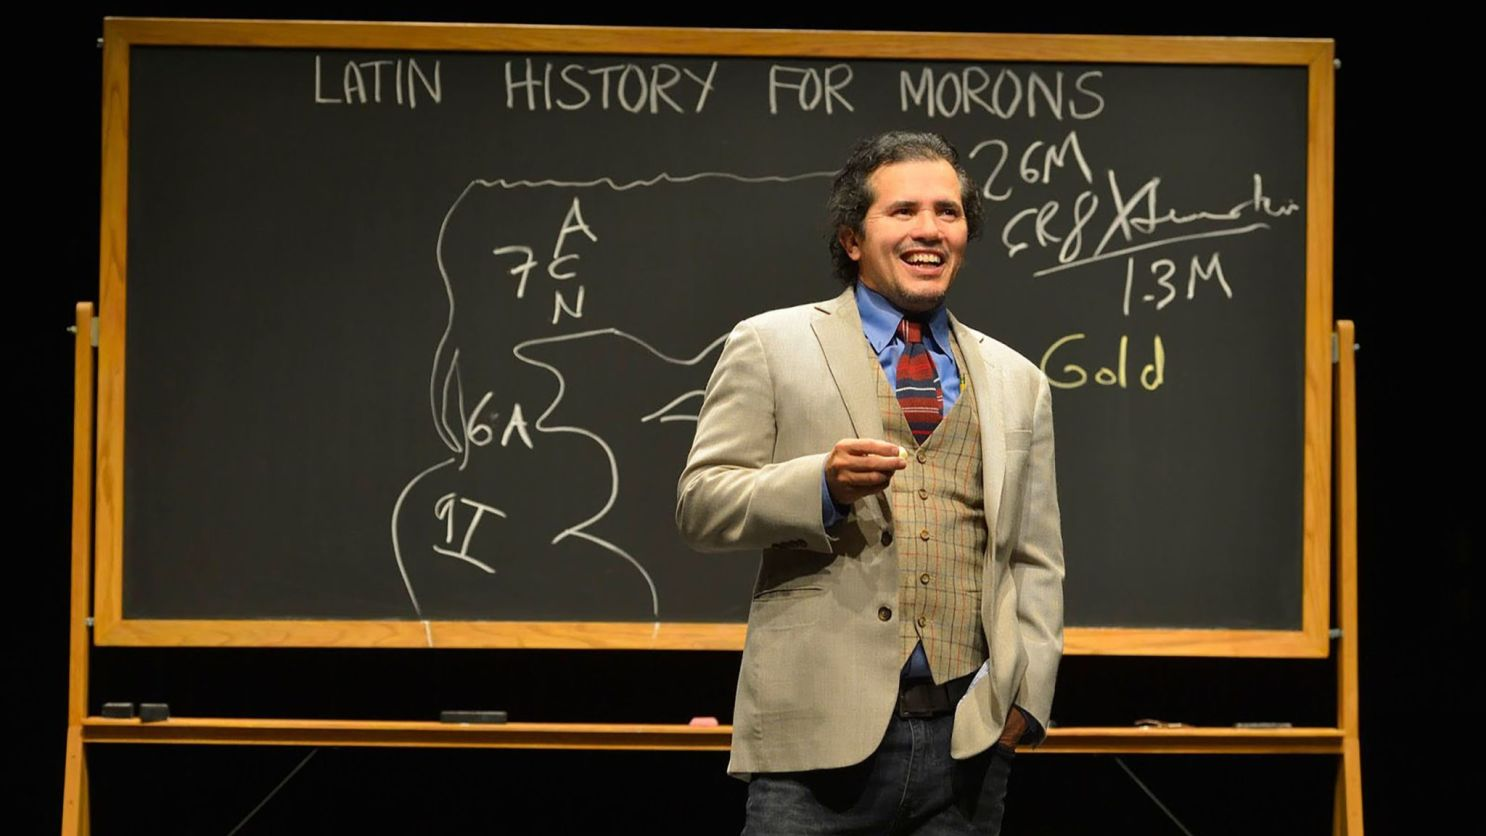 Still from Latin History for Morons